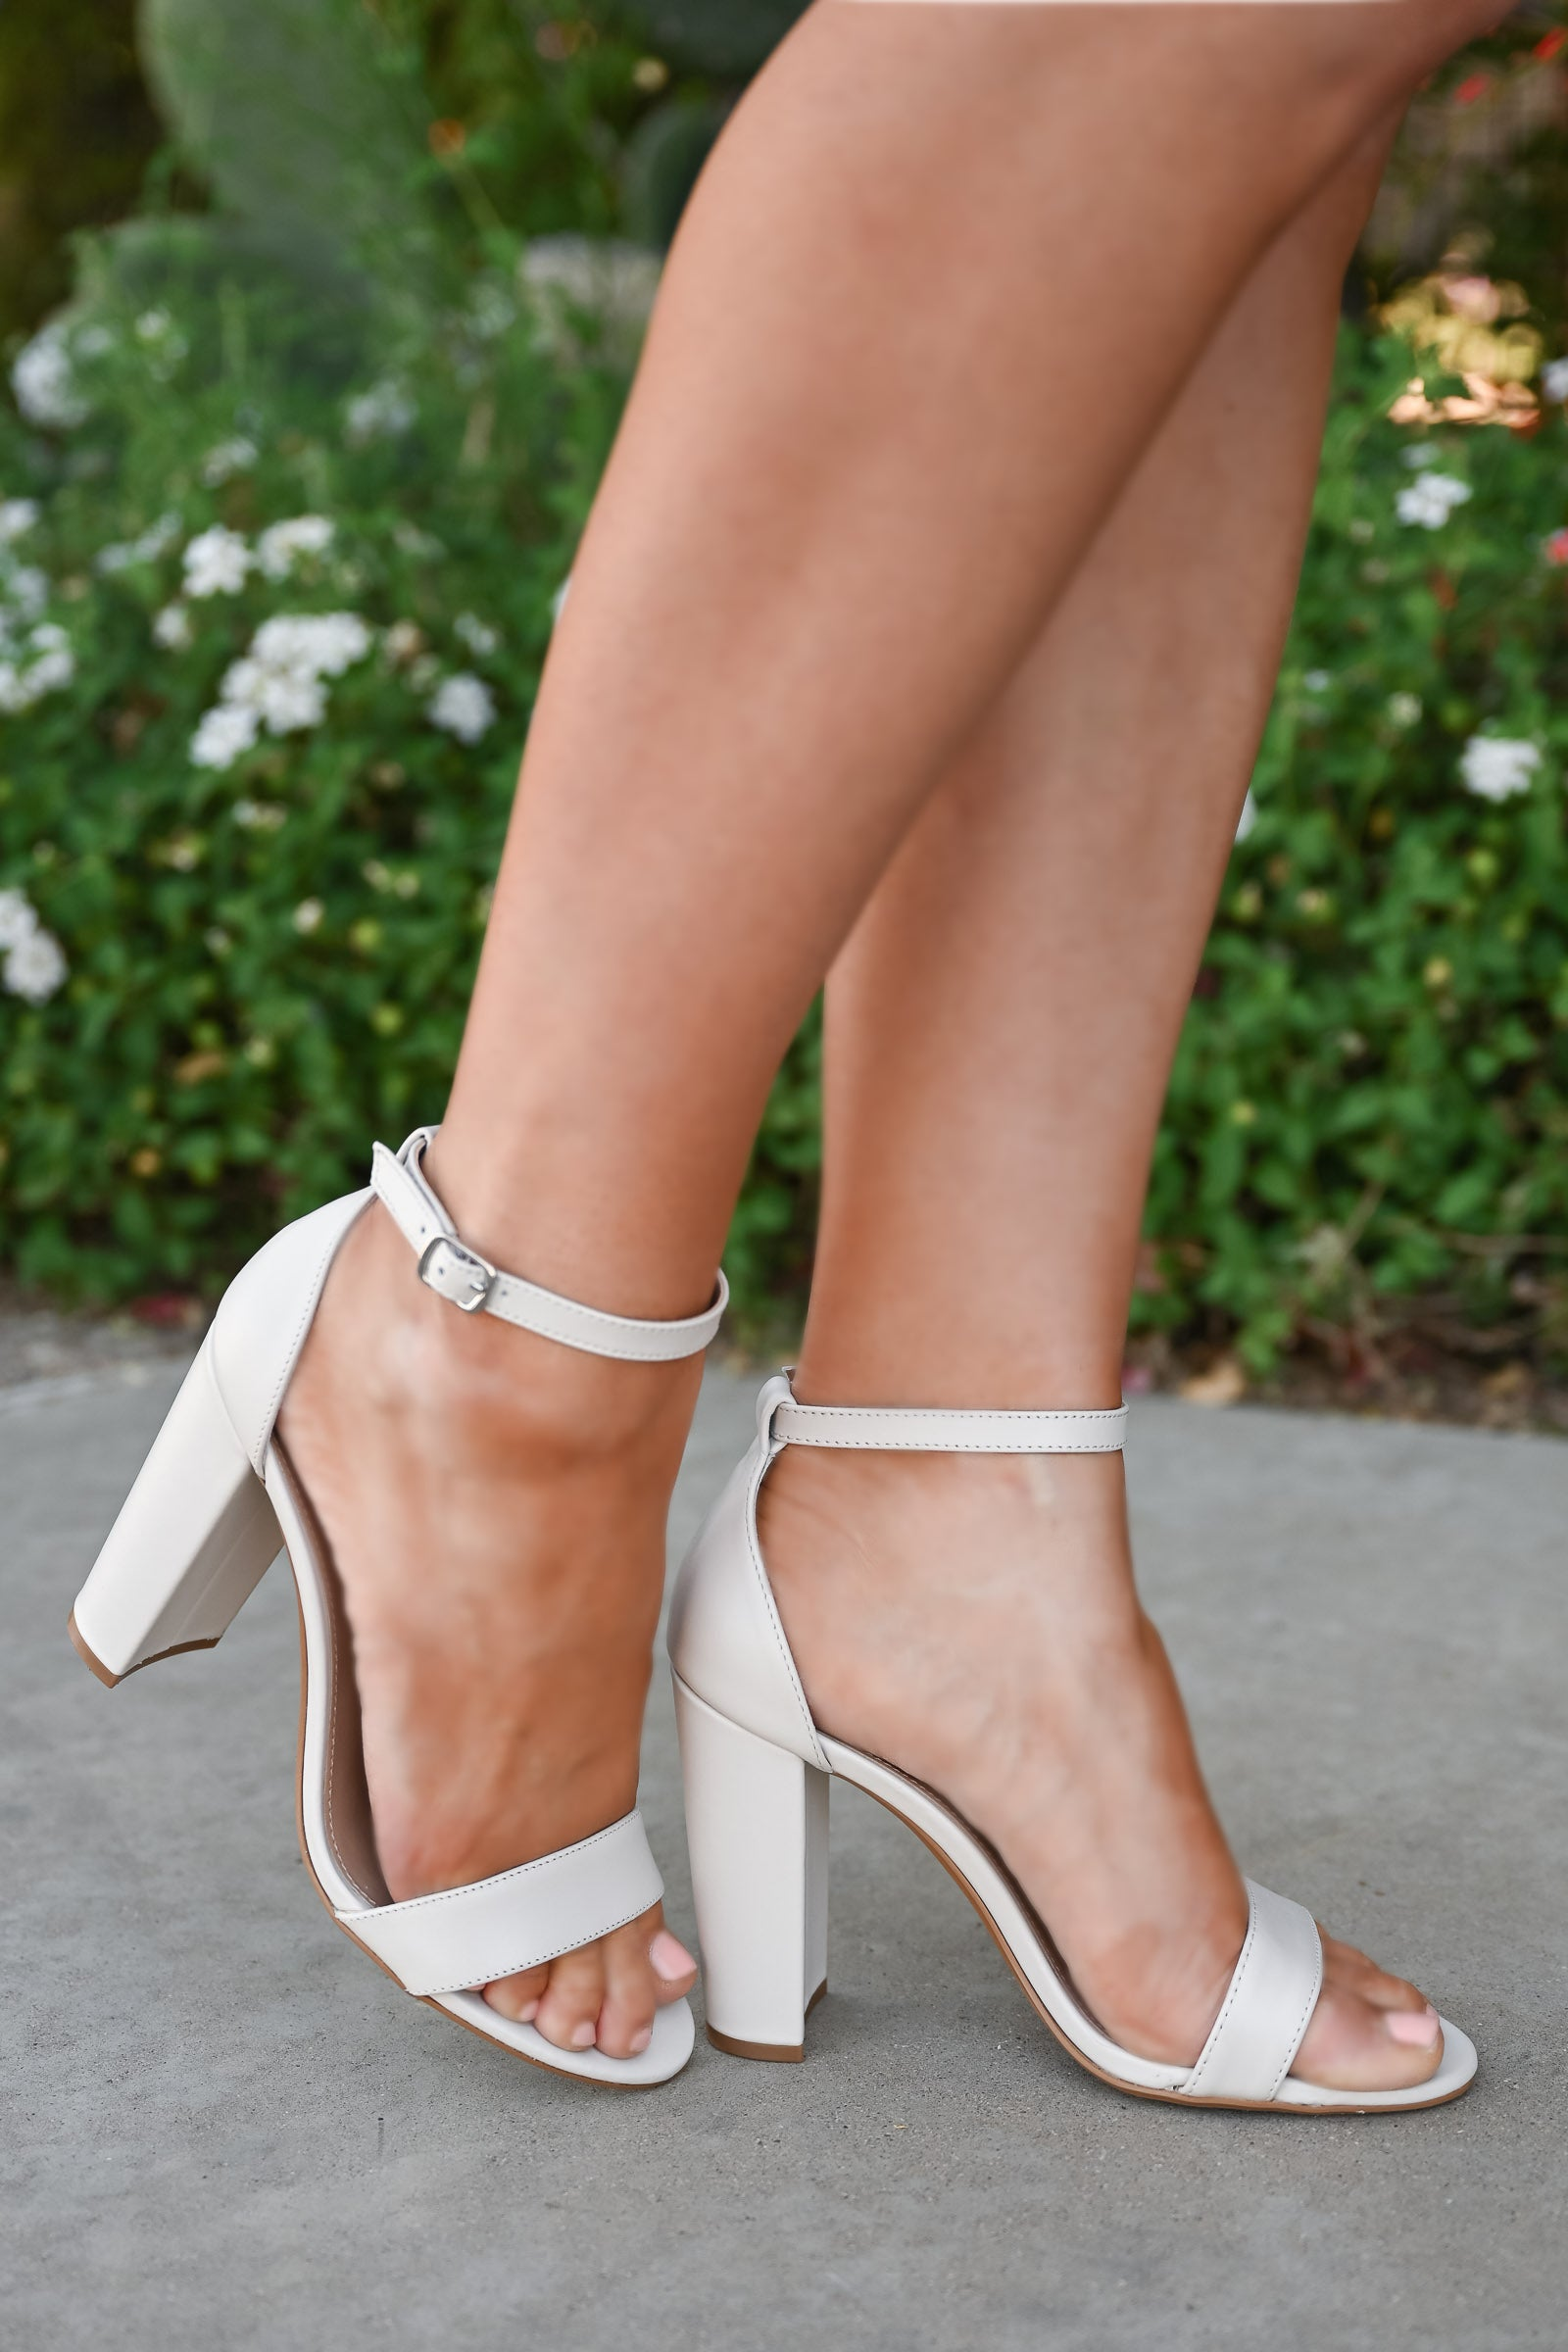 STEVE MADDEN Carrson Heels - Bone Leather womens trendy block high heels closet candy side